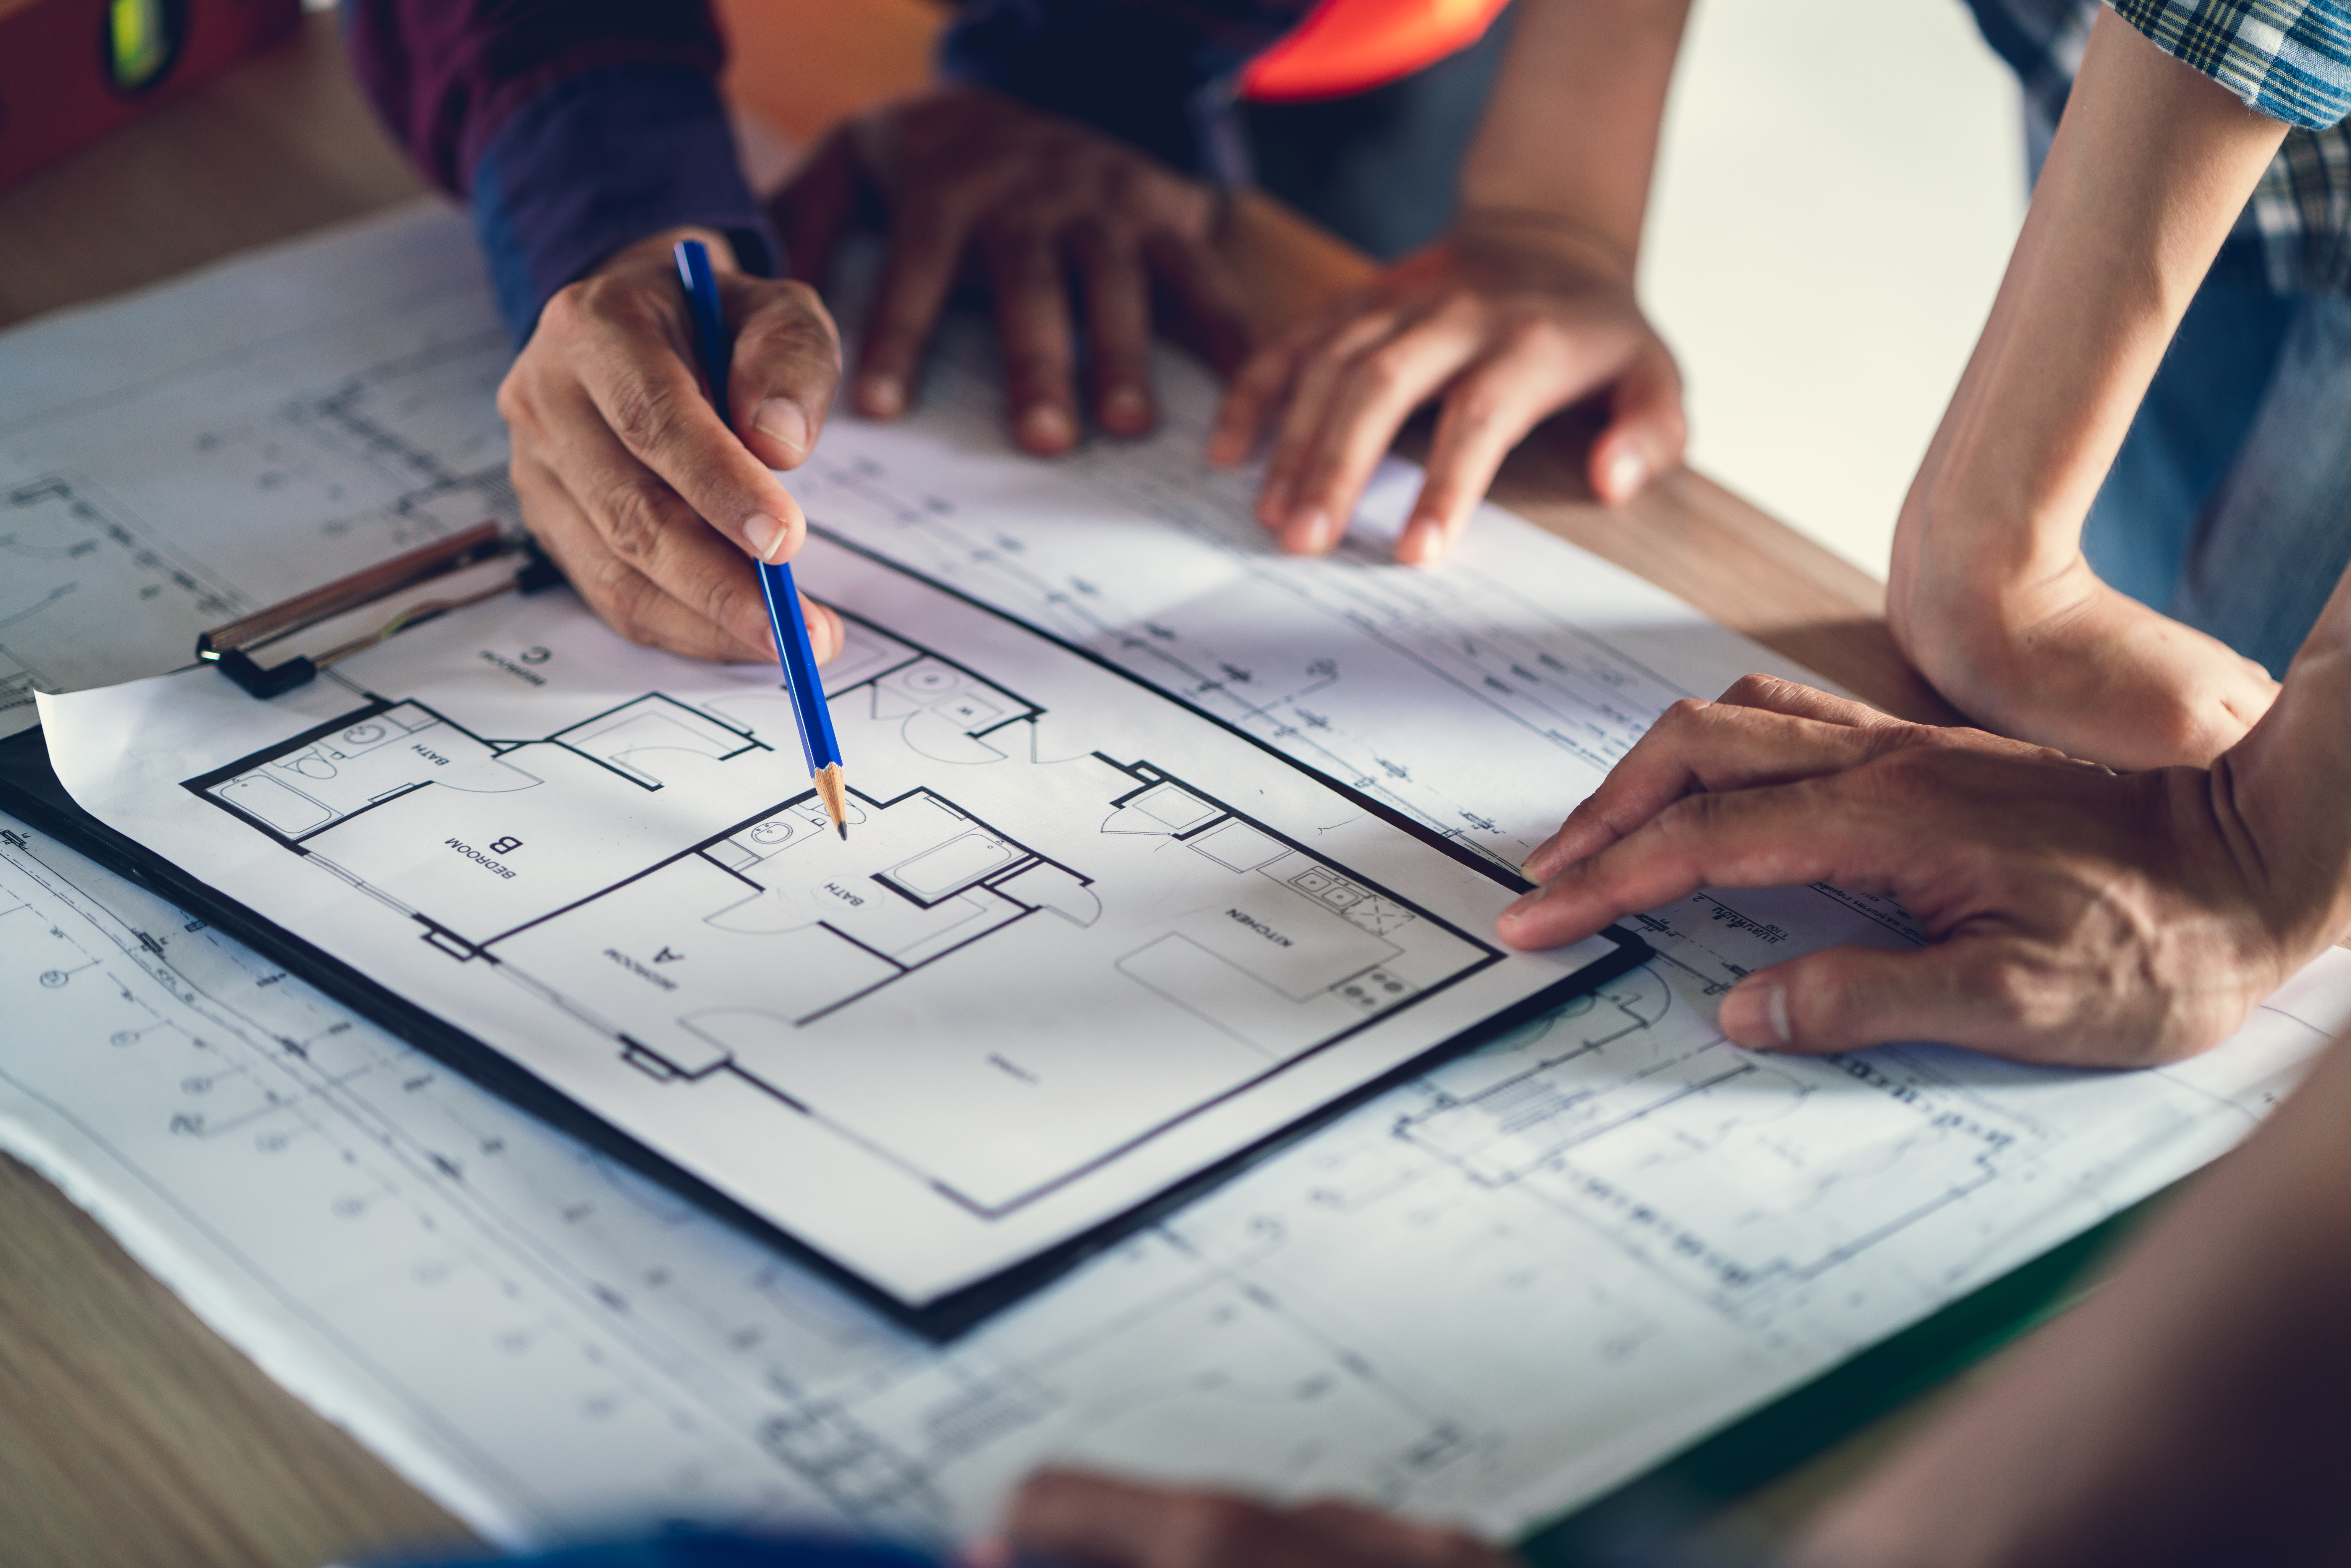 Step 2: Develop a project planning schedule